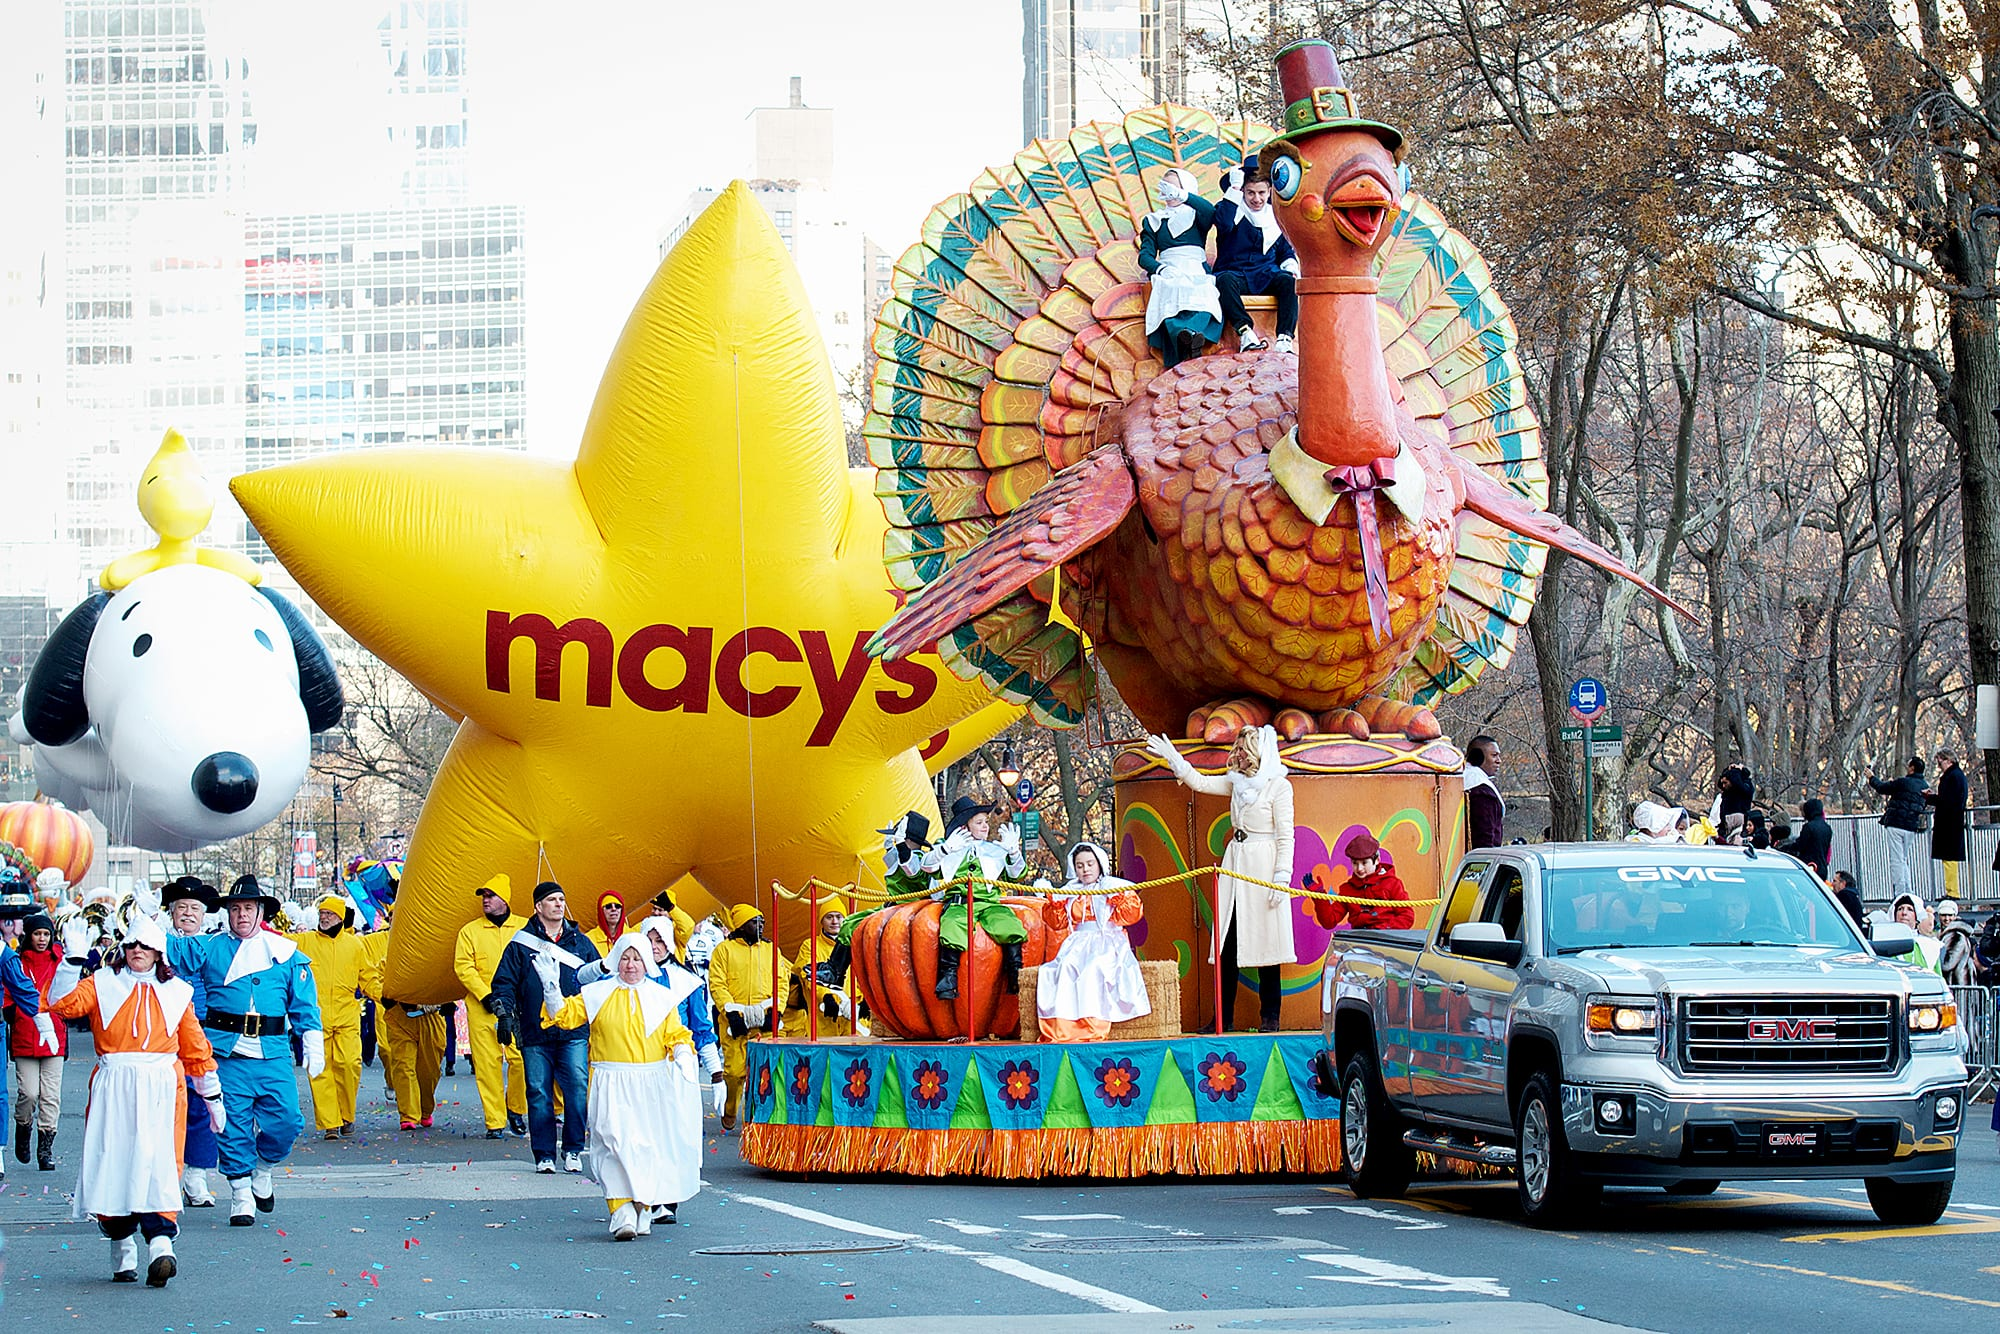 TLC, Kelly Rowland, Ozuna & More to Attend Macy's Thanksgiving Day Parade